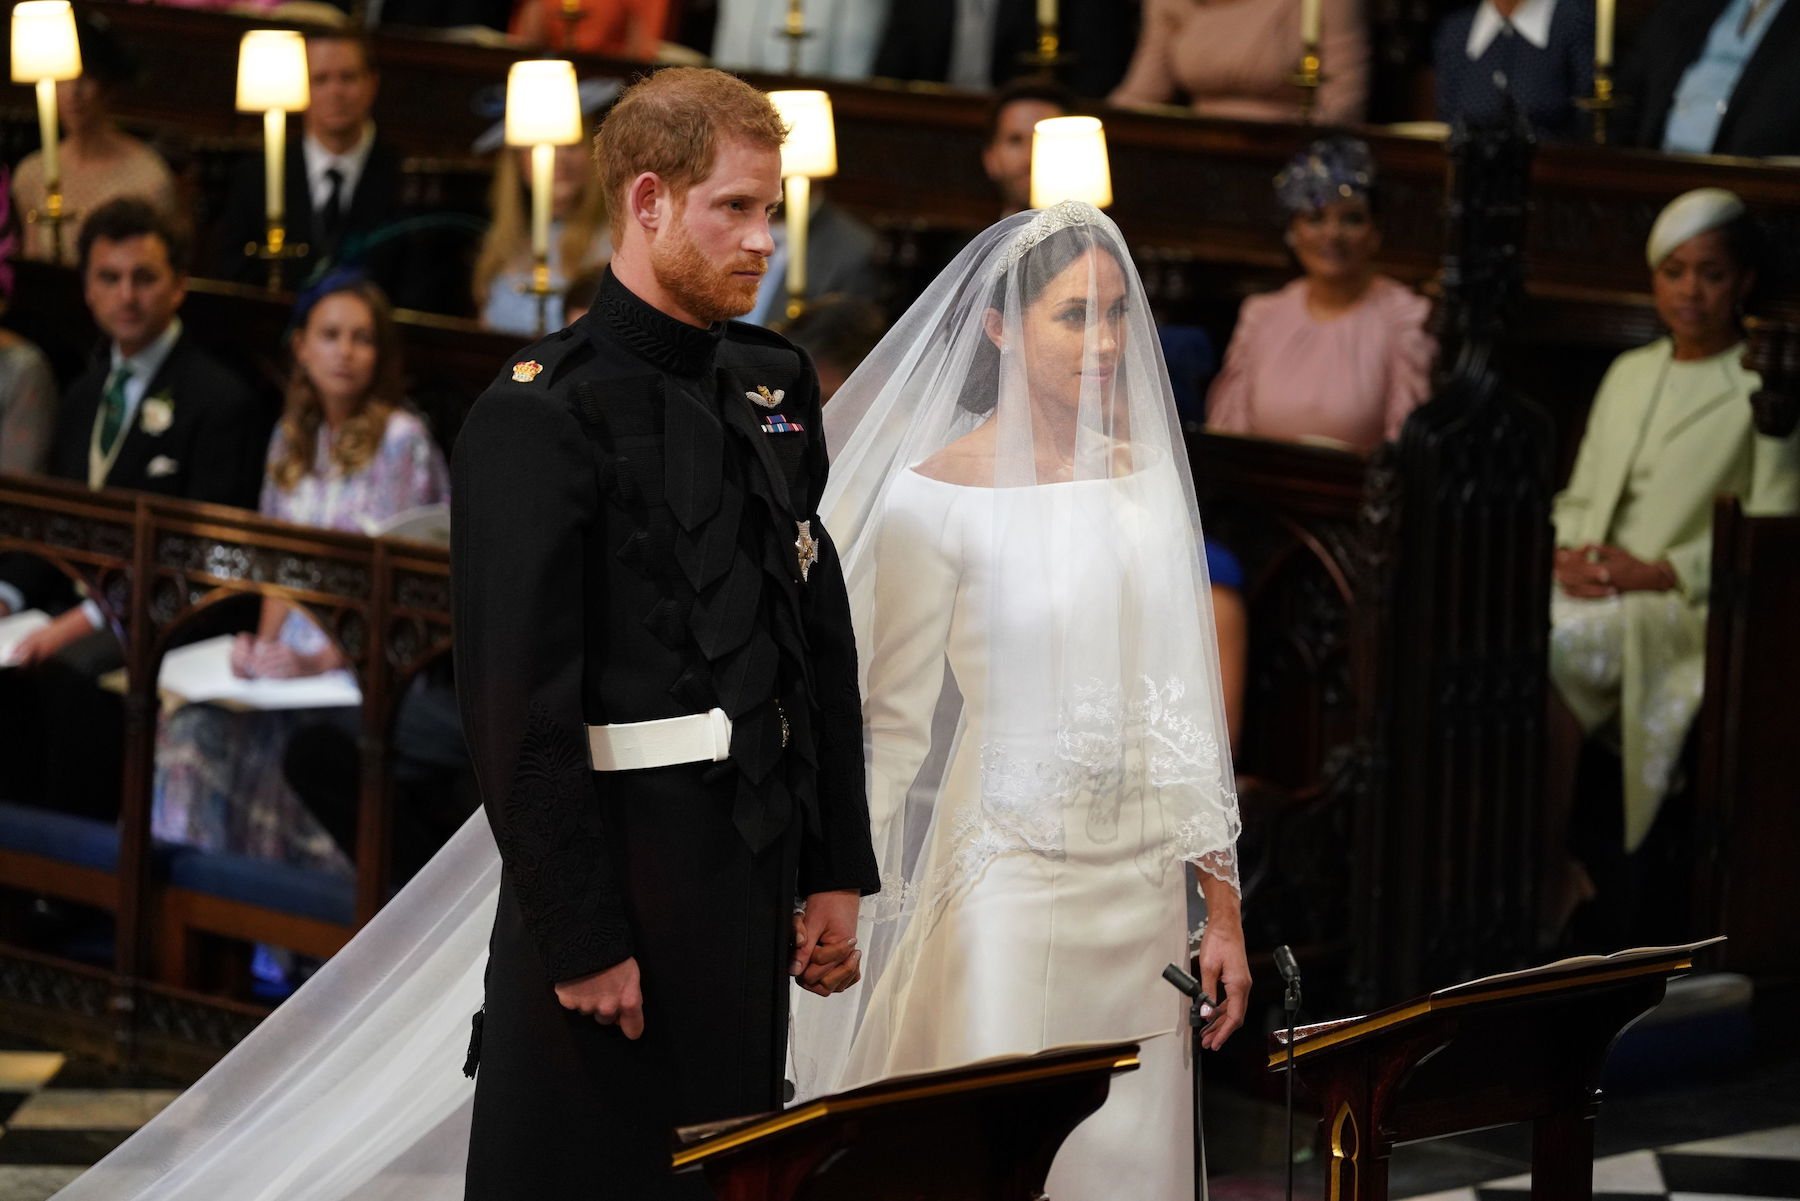 The Moment We've Been Waiting For! See Meghan Markle's Stunning Wedding Dress